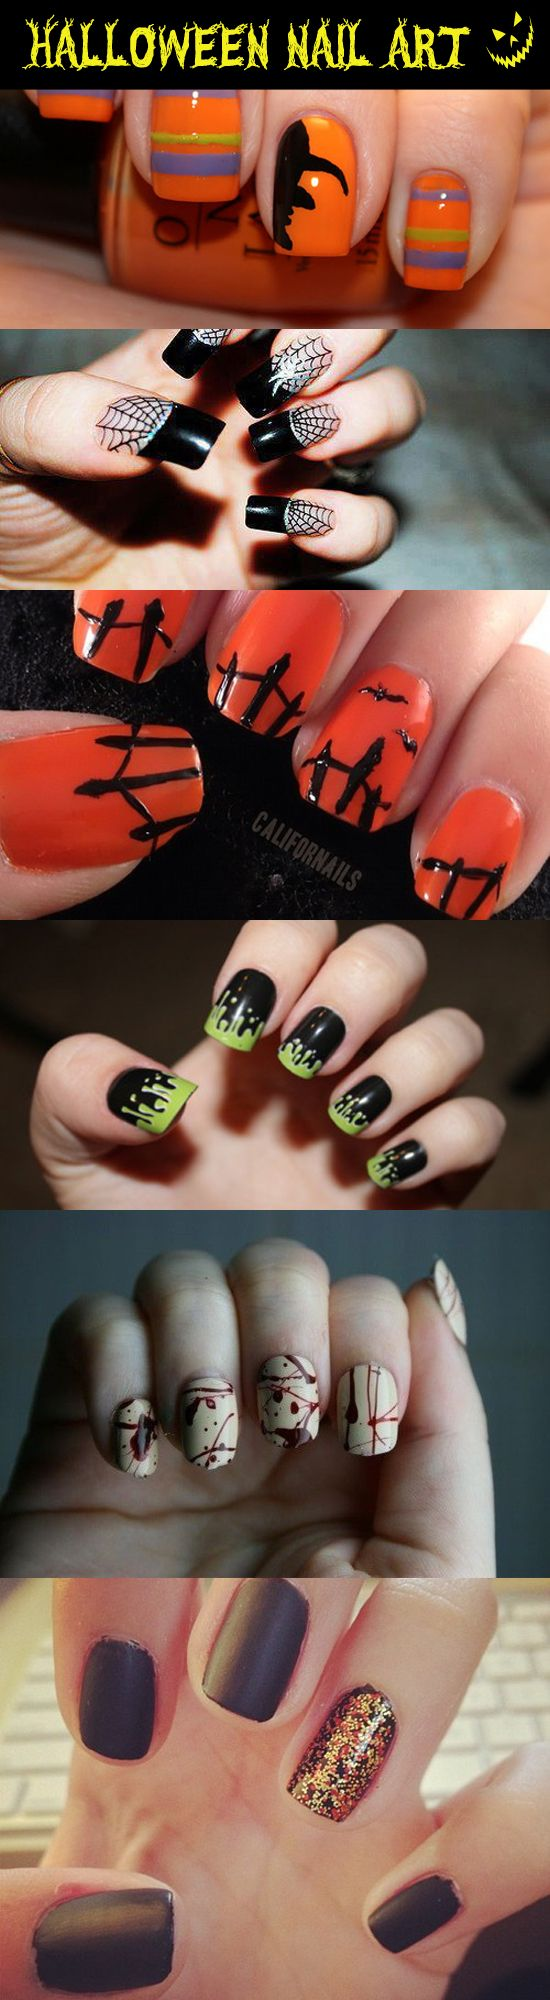 halloween nail art ideas unique